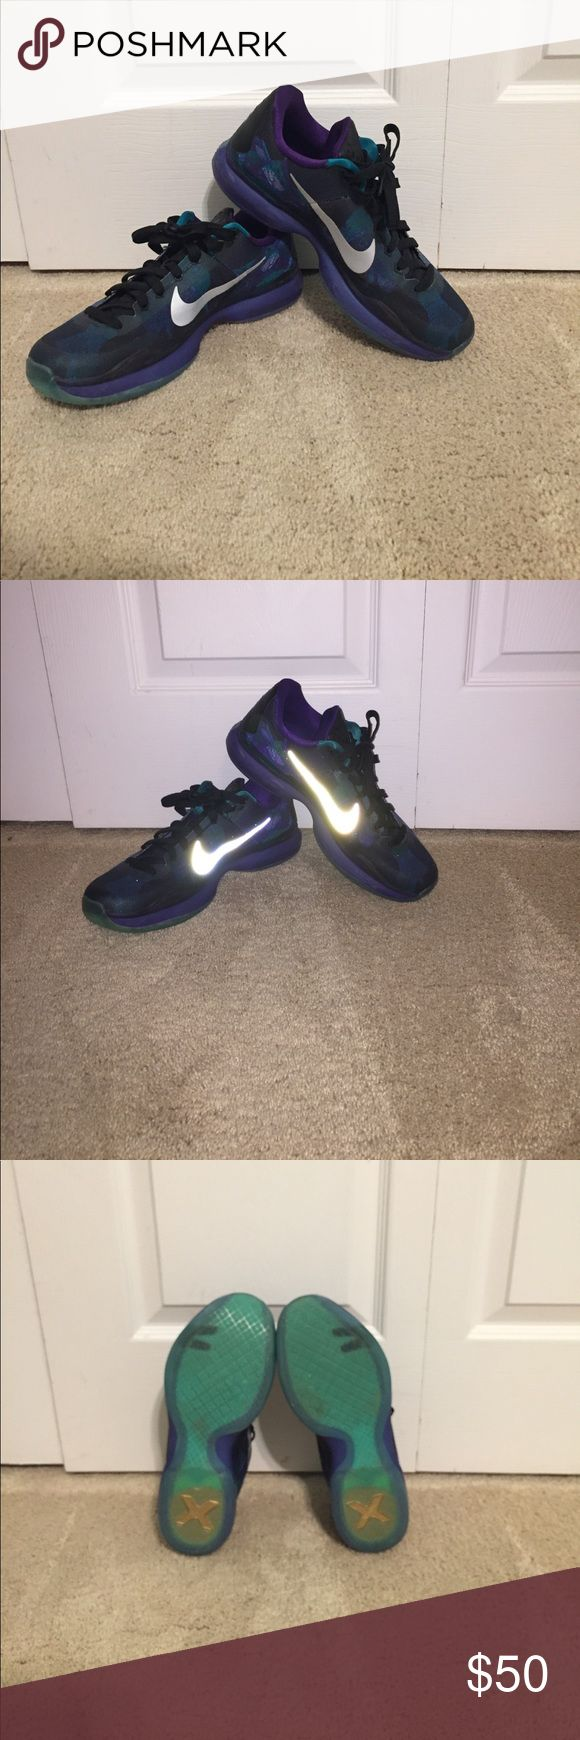 Kobe 10 Men's size 8.5 Blue and purple Kobe basketball shoes. Almost perfect condition, only worn inside! Nike Shoes Athletic Shoes